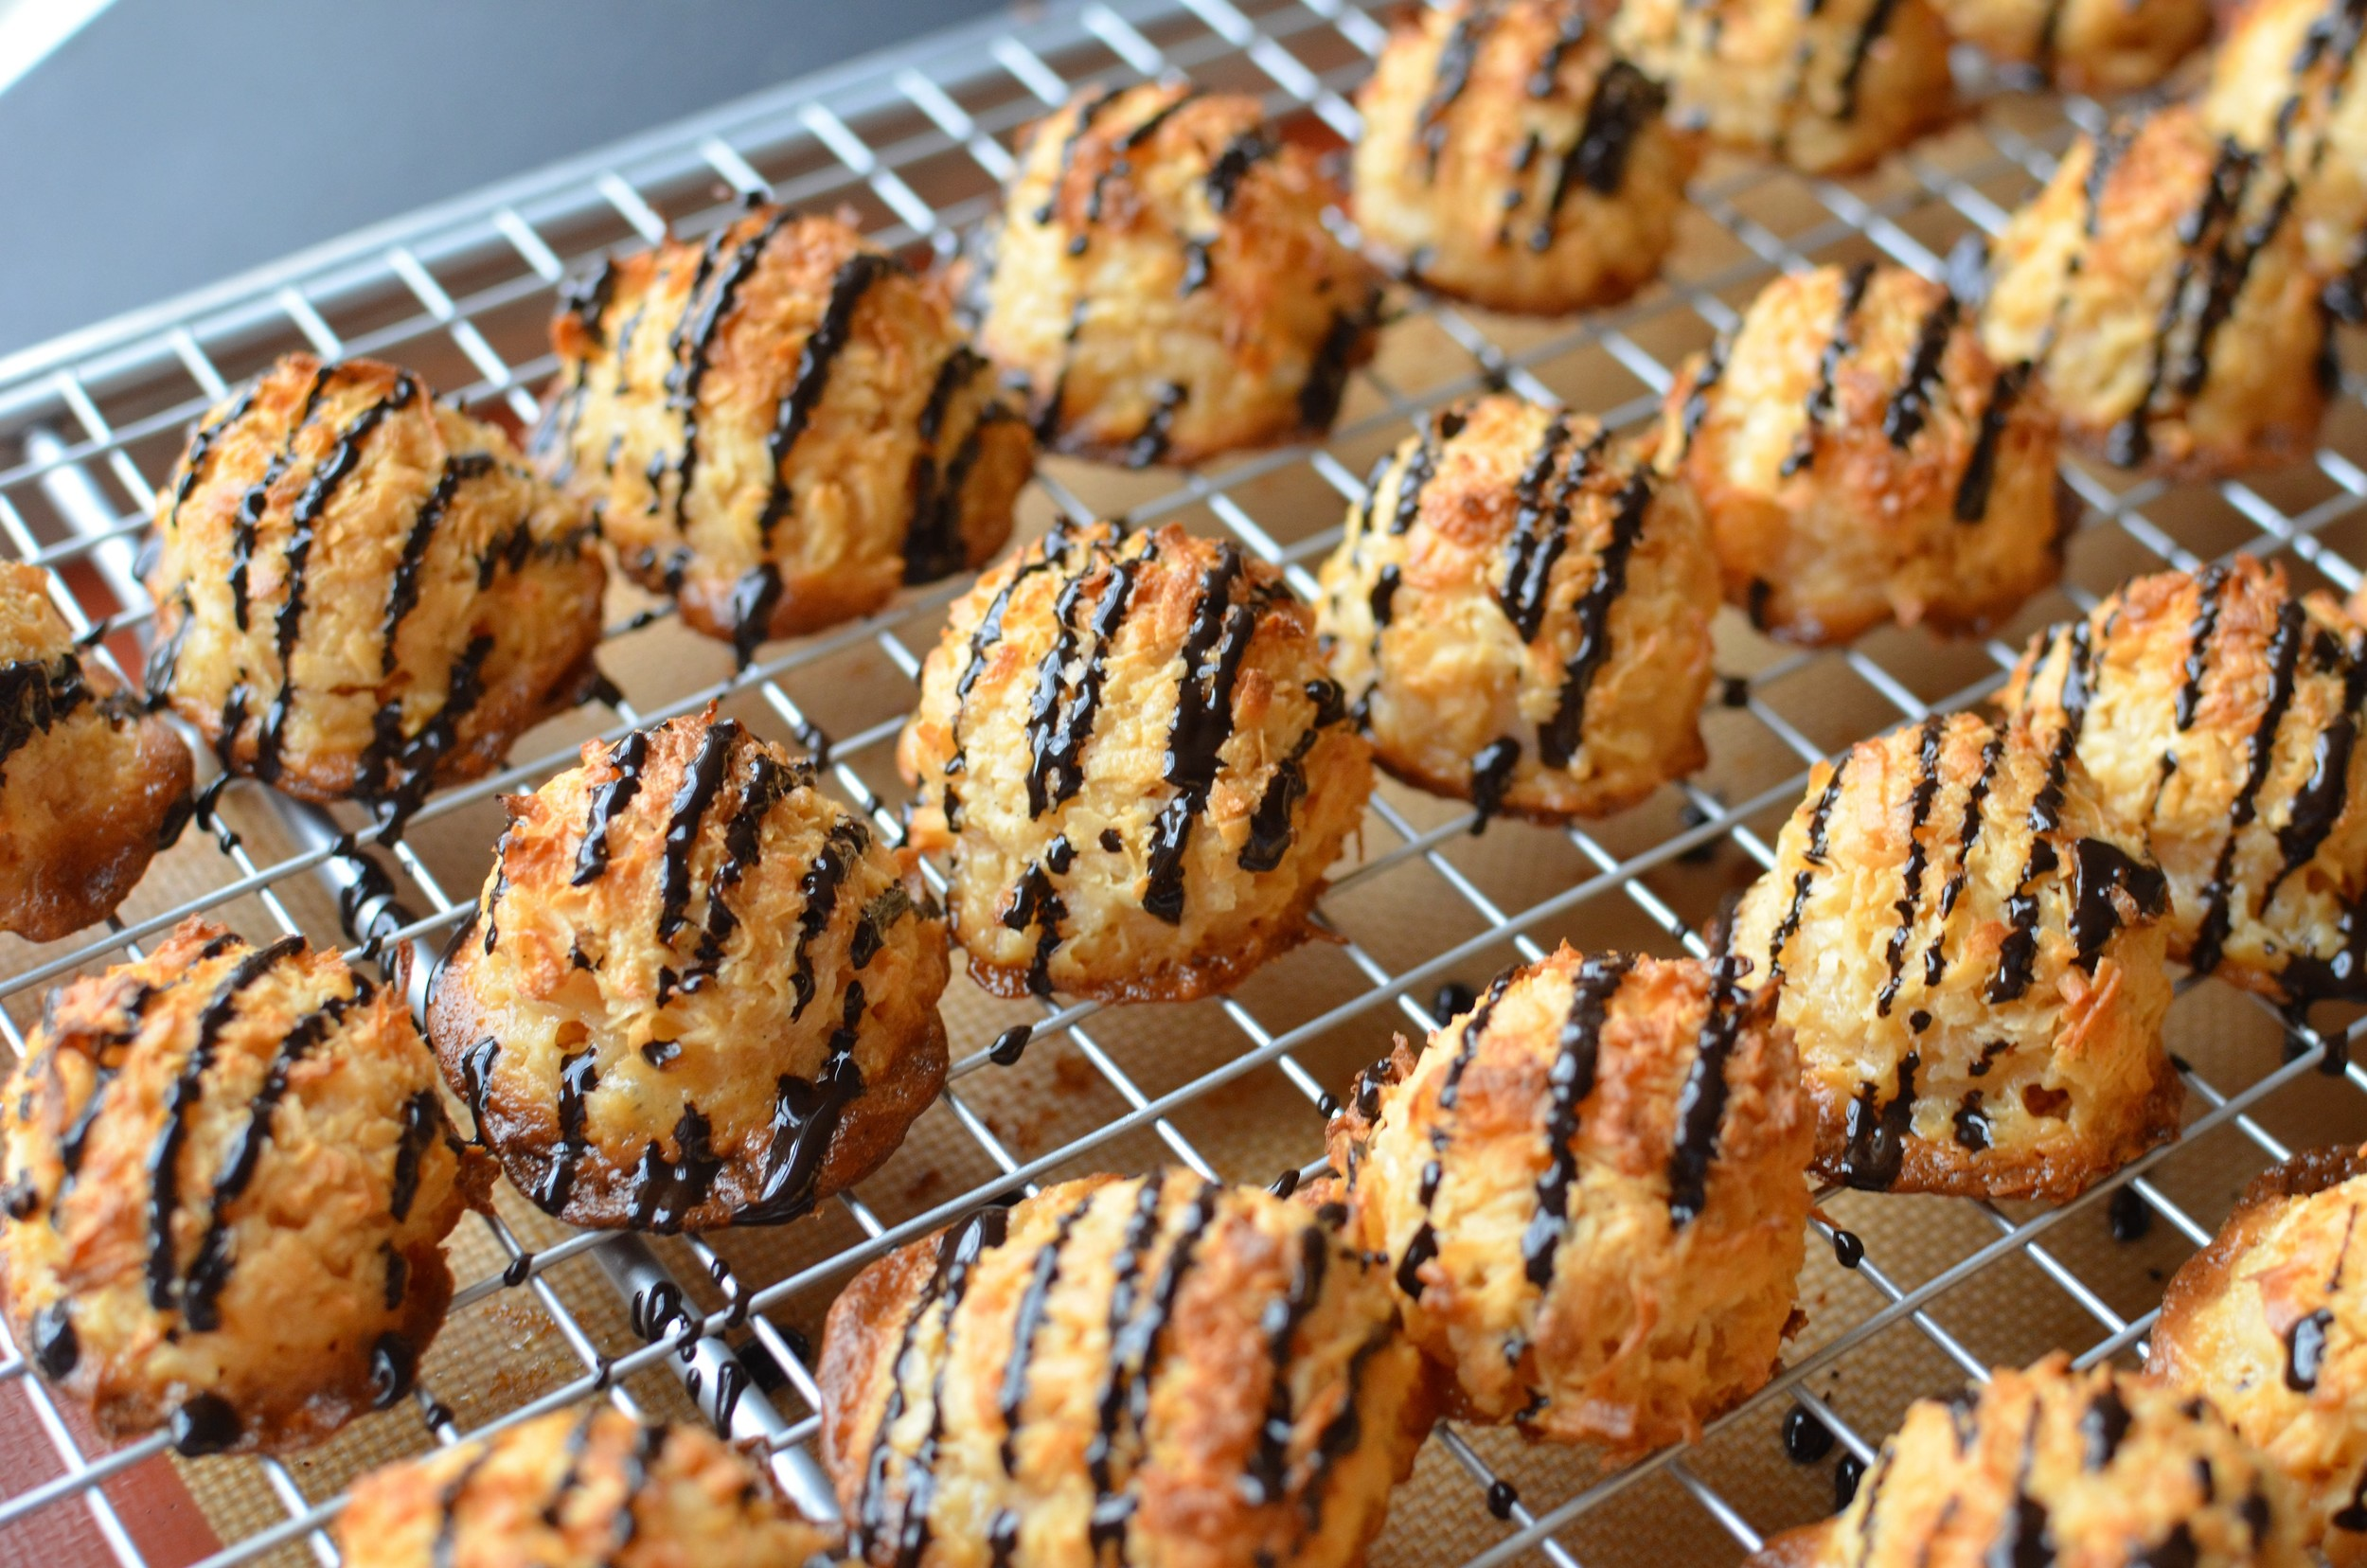 how to make coconut macaroons with chocolate drizzle - step by step photos and recipe